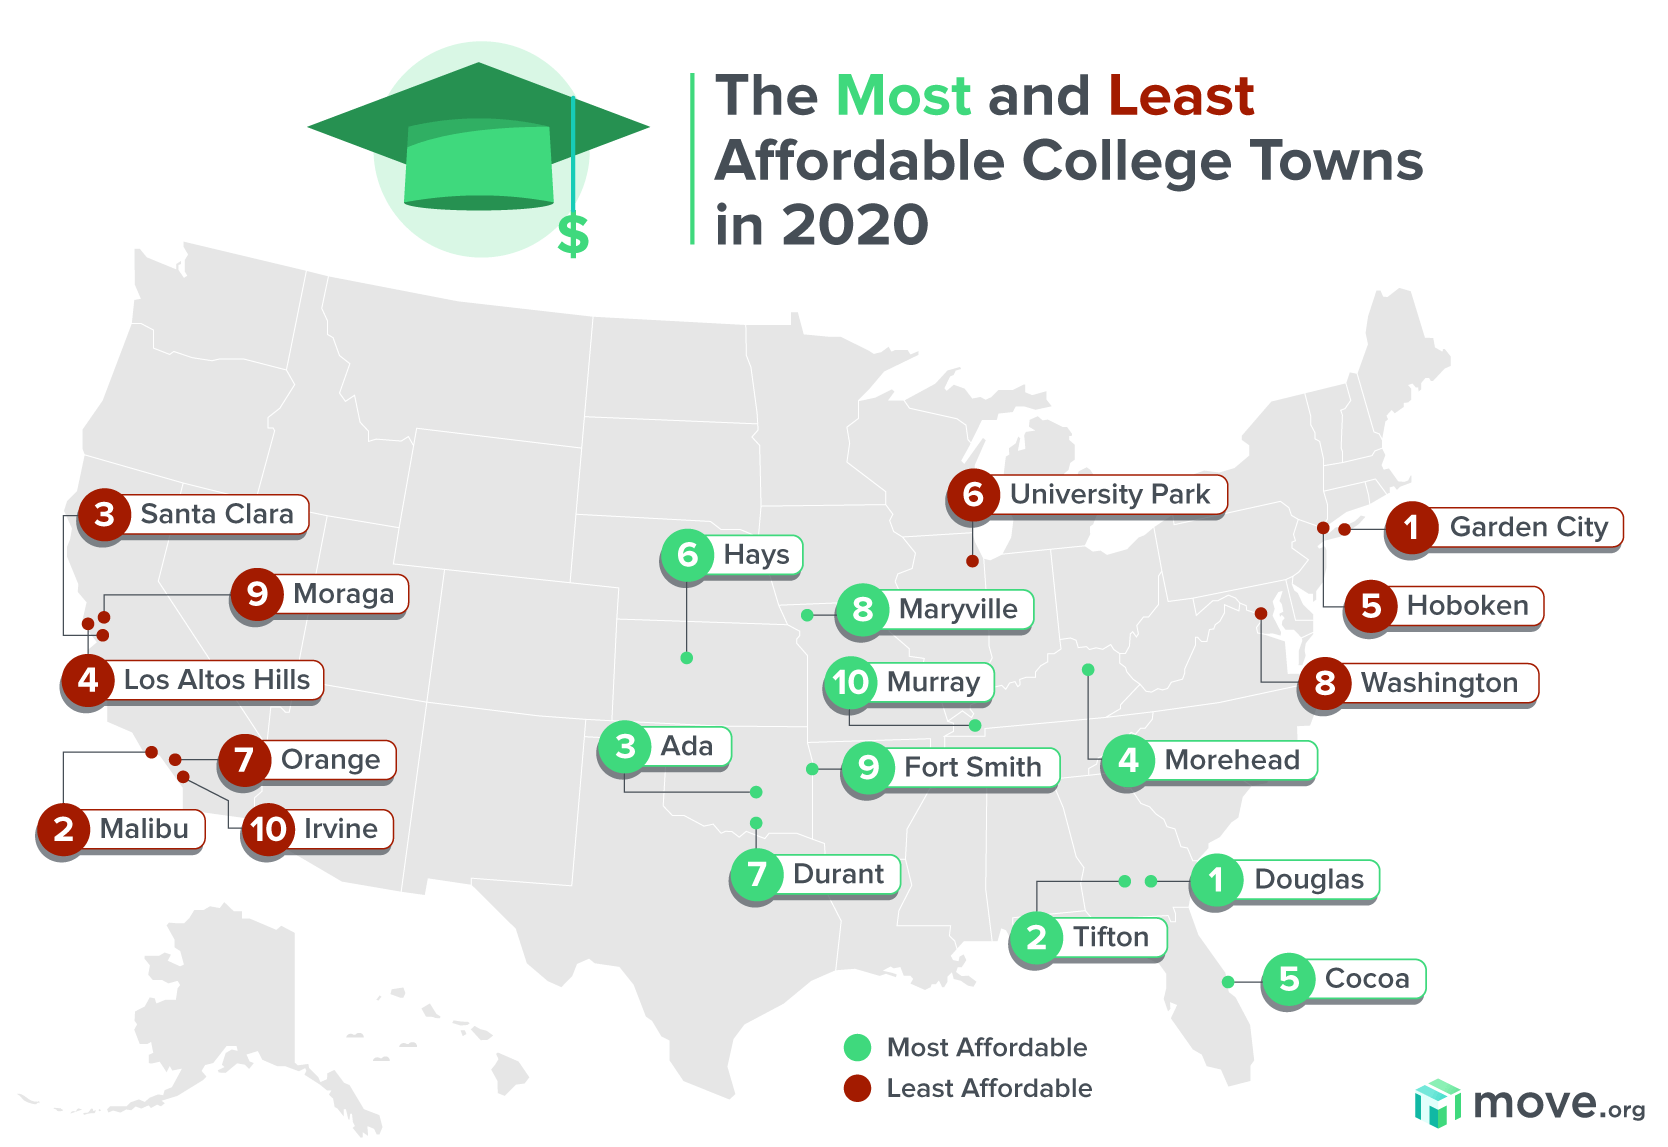 Map of the most and least affordable college towns